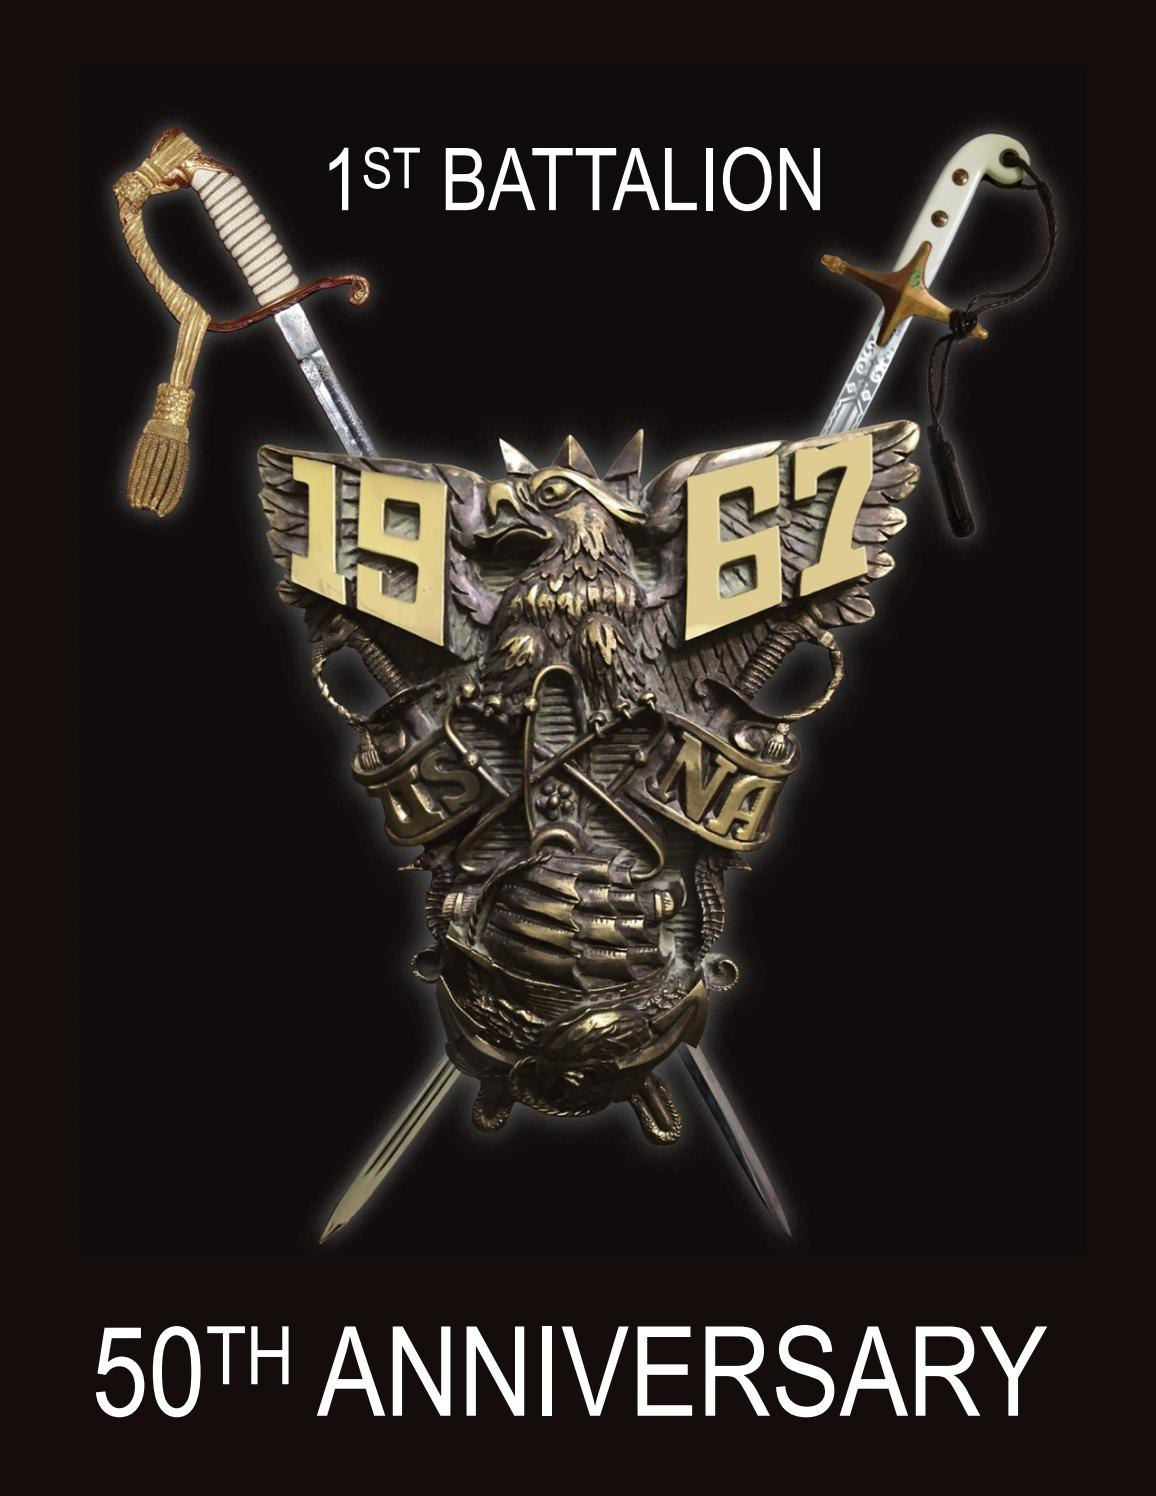 on sale 8cead 14049 Anniversary book 1st battalion by edmills43 - issuu